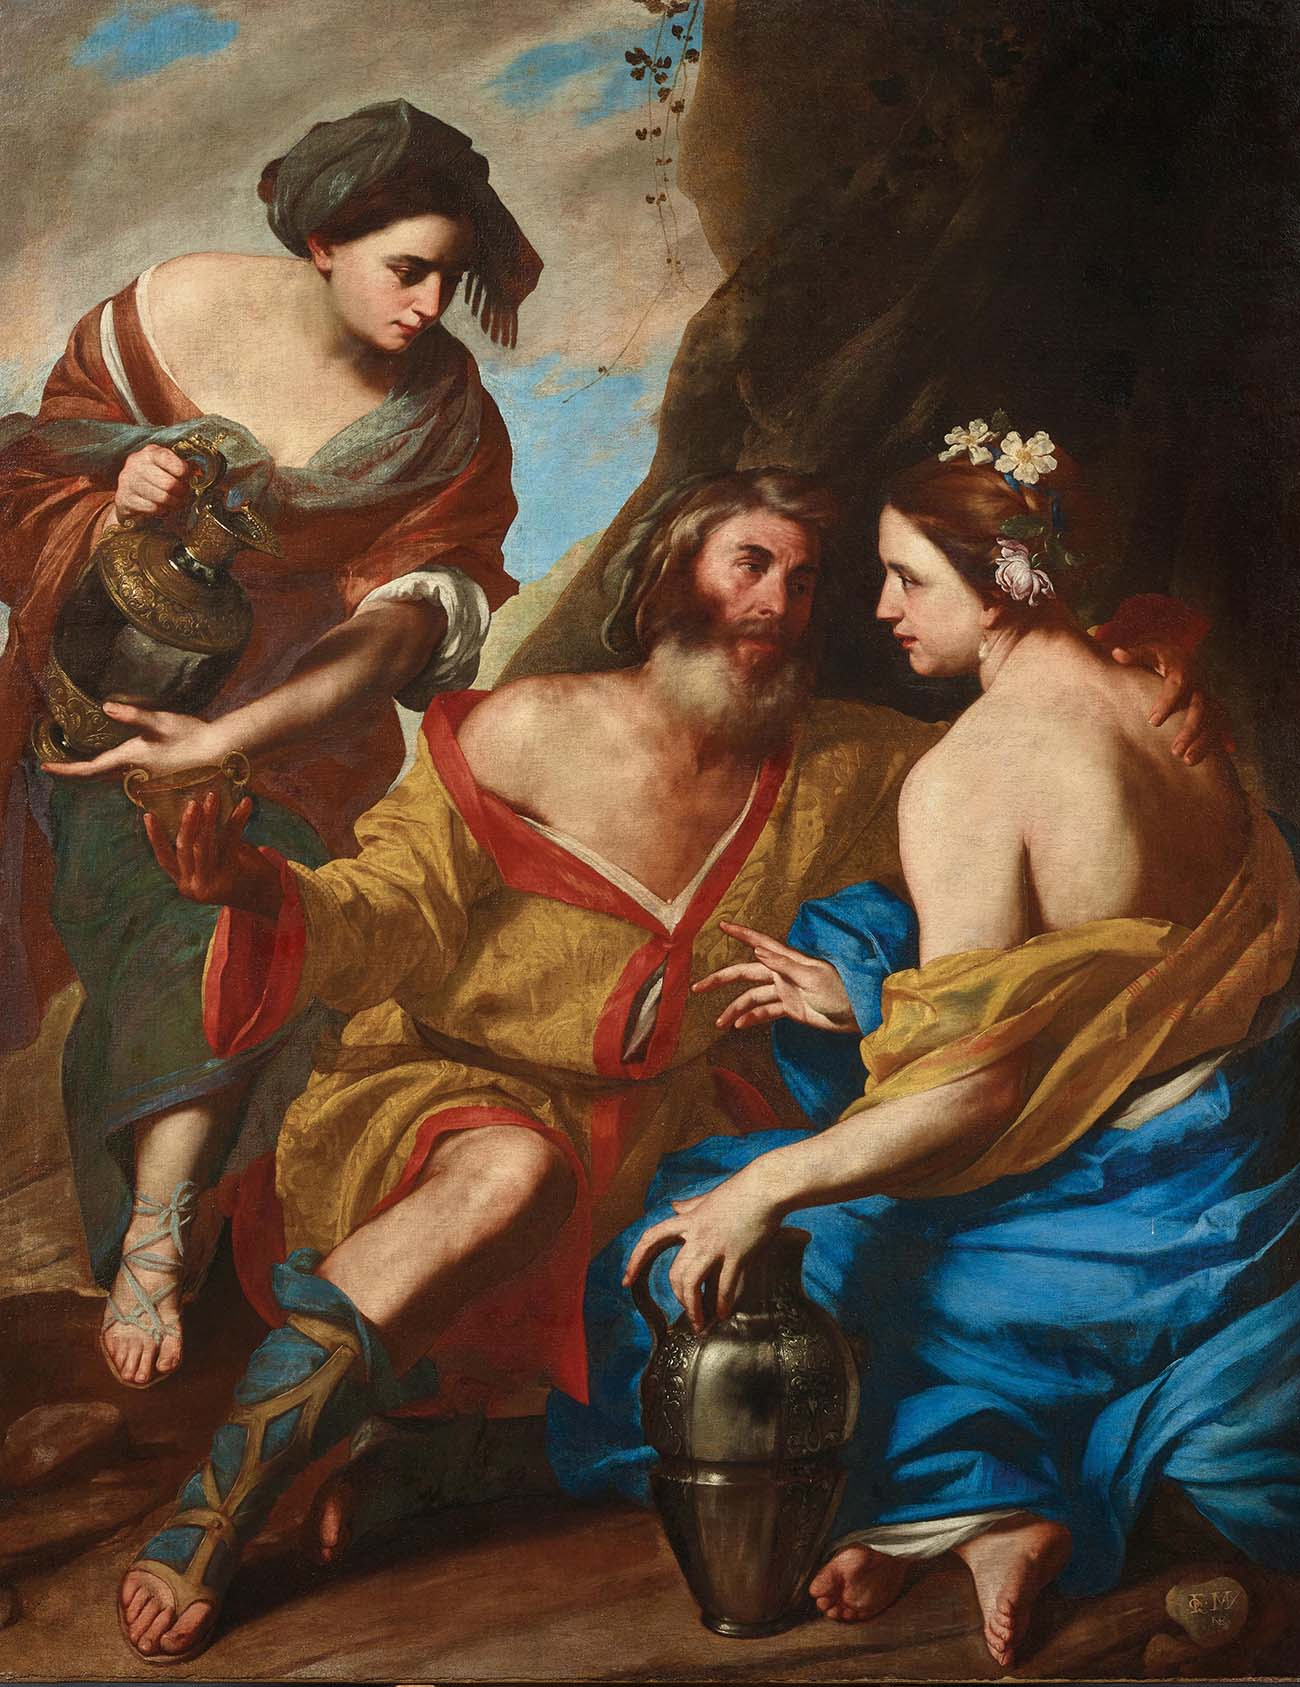 Massimo Stanzione,Lot and his daughters, signed with an entwined monogram lower right, oil on canvas, 166.5 x 130.5 cm, estimate € 200,000 - 300,000